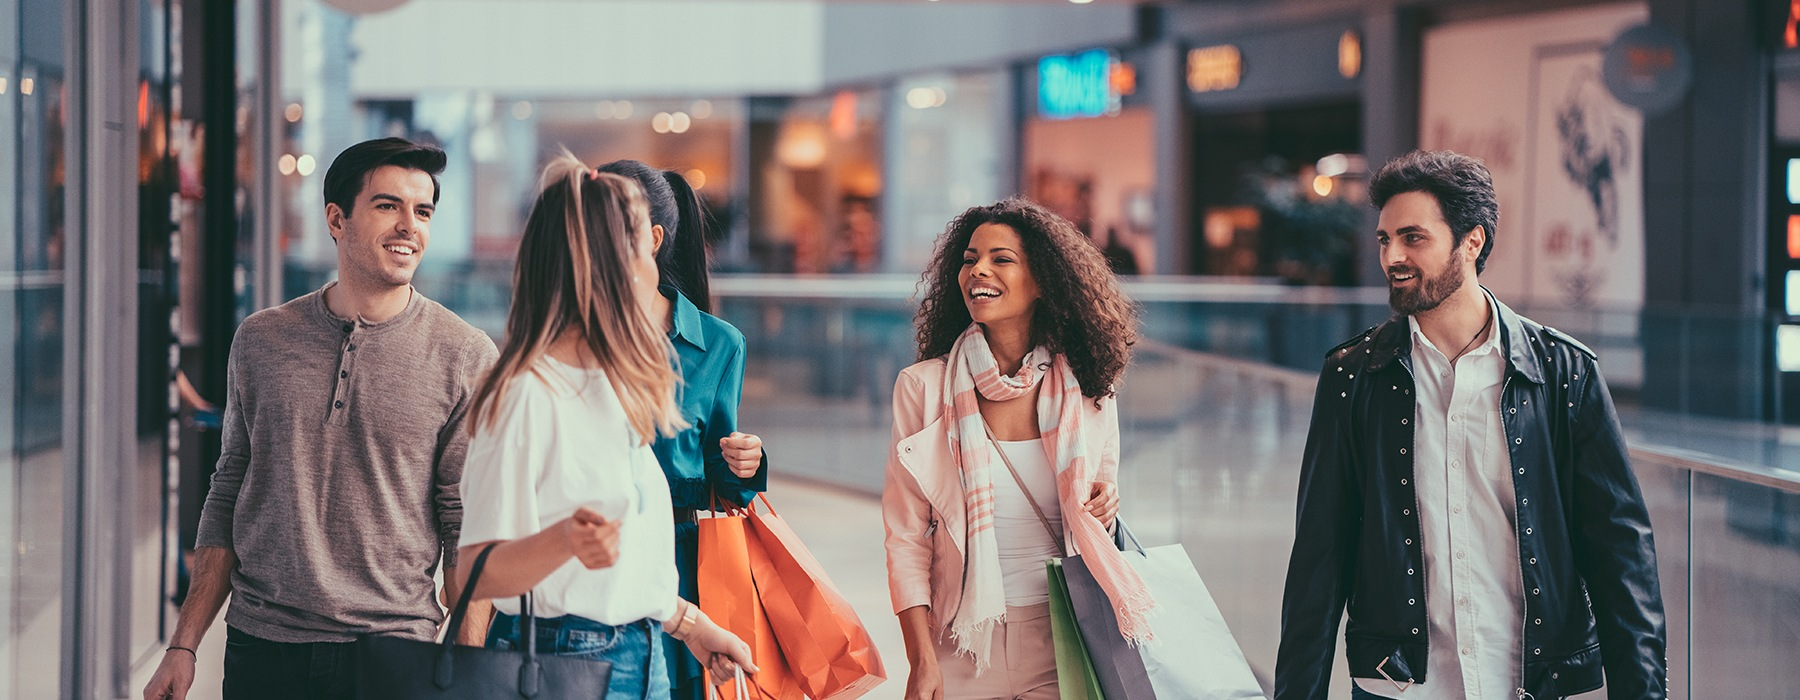 Residents enjoying their time at local shopping centers near The Lofts at Willow Creek